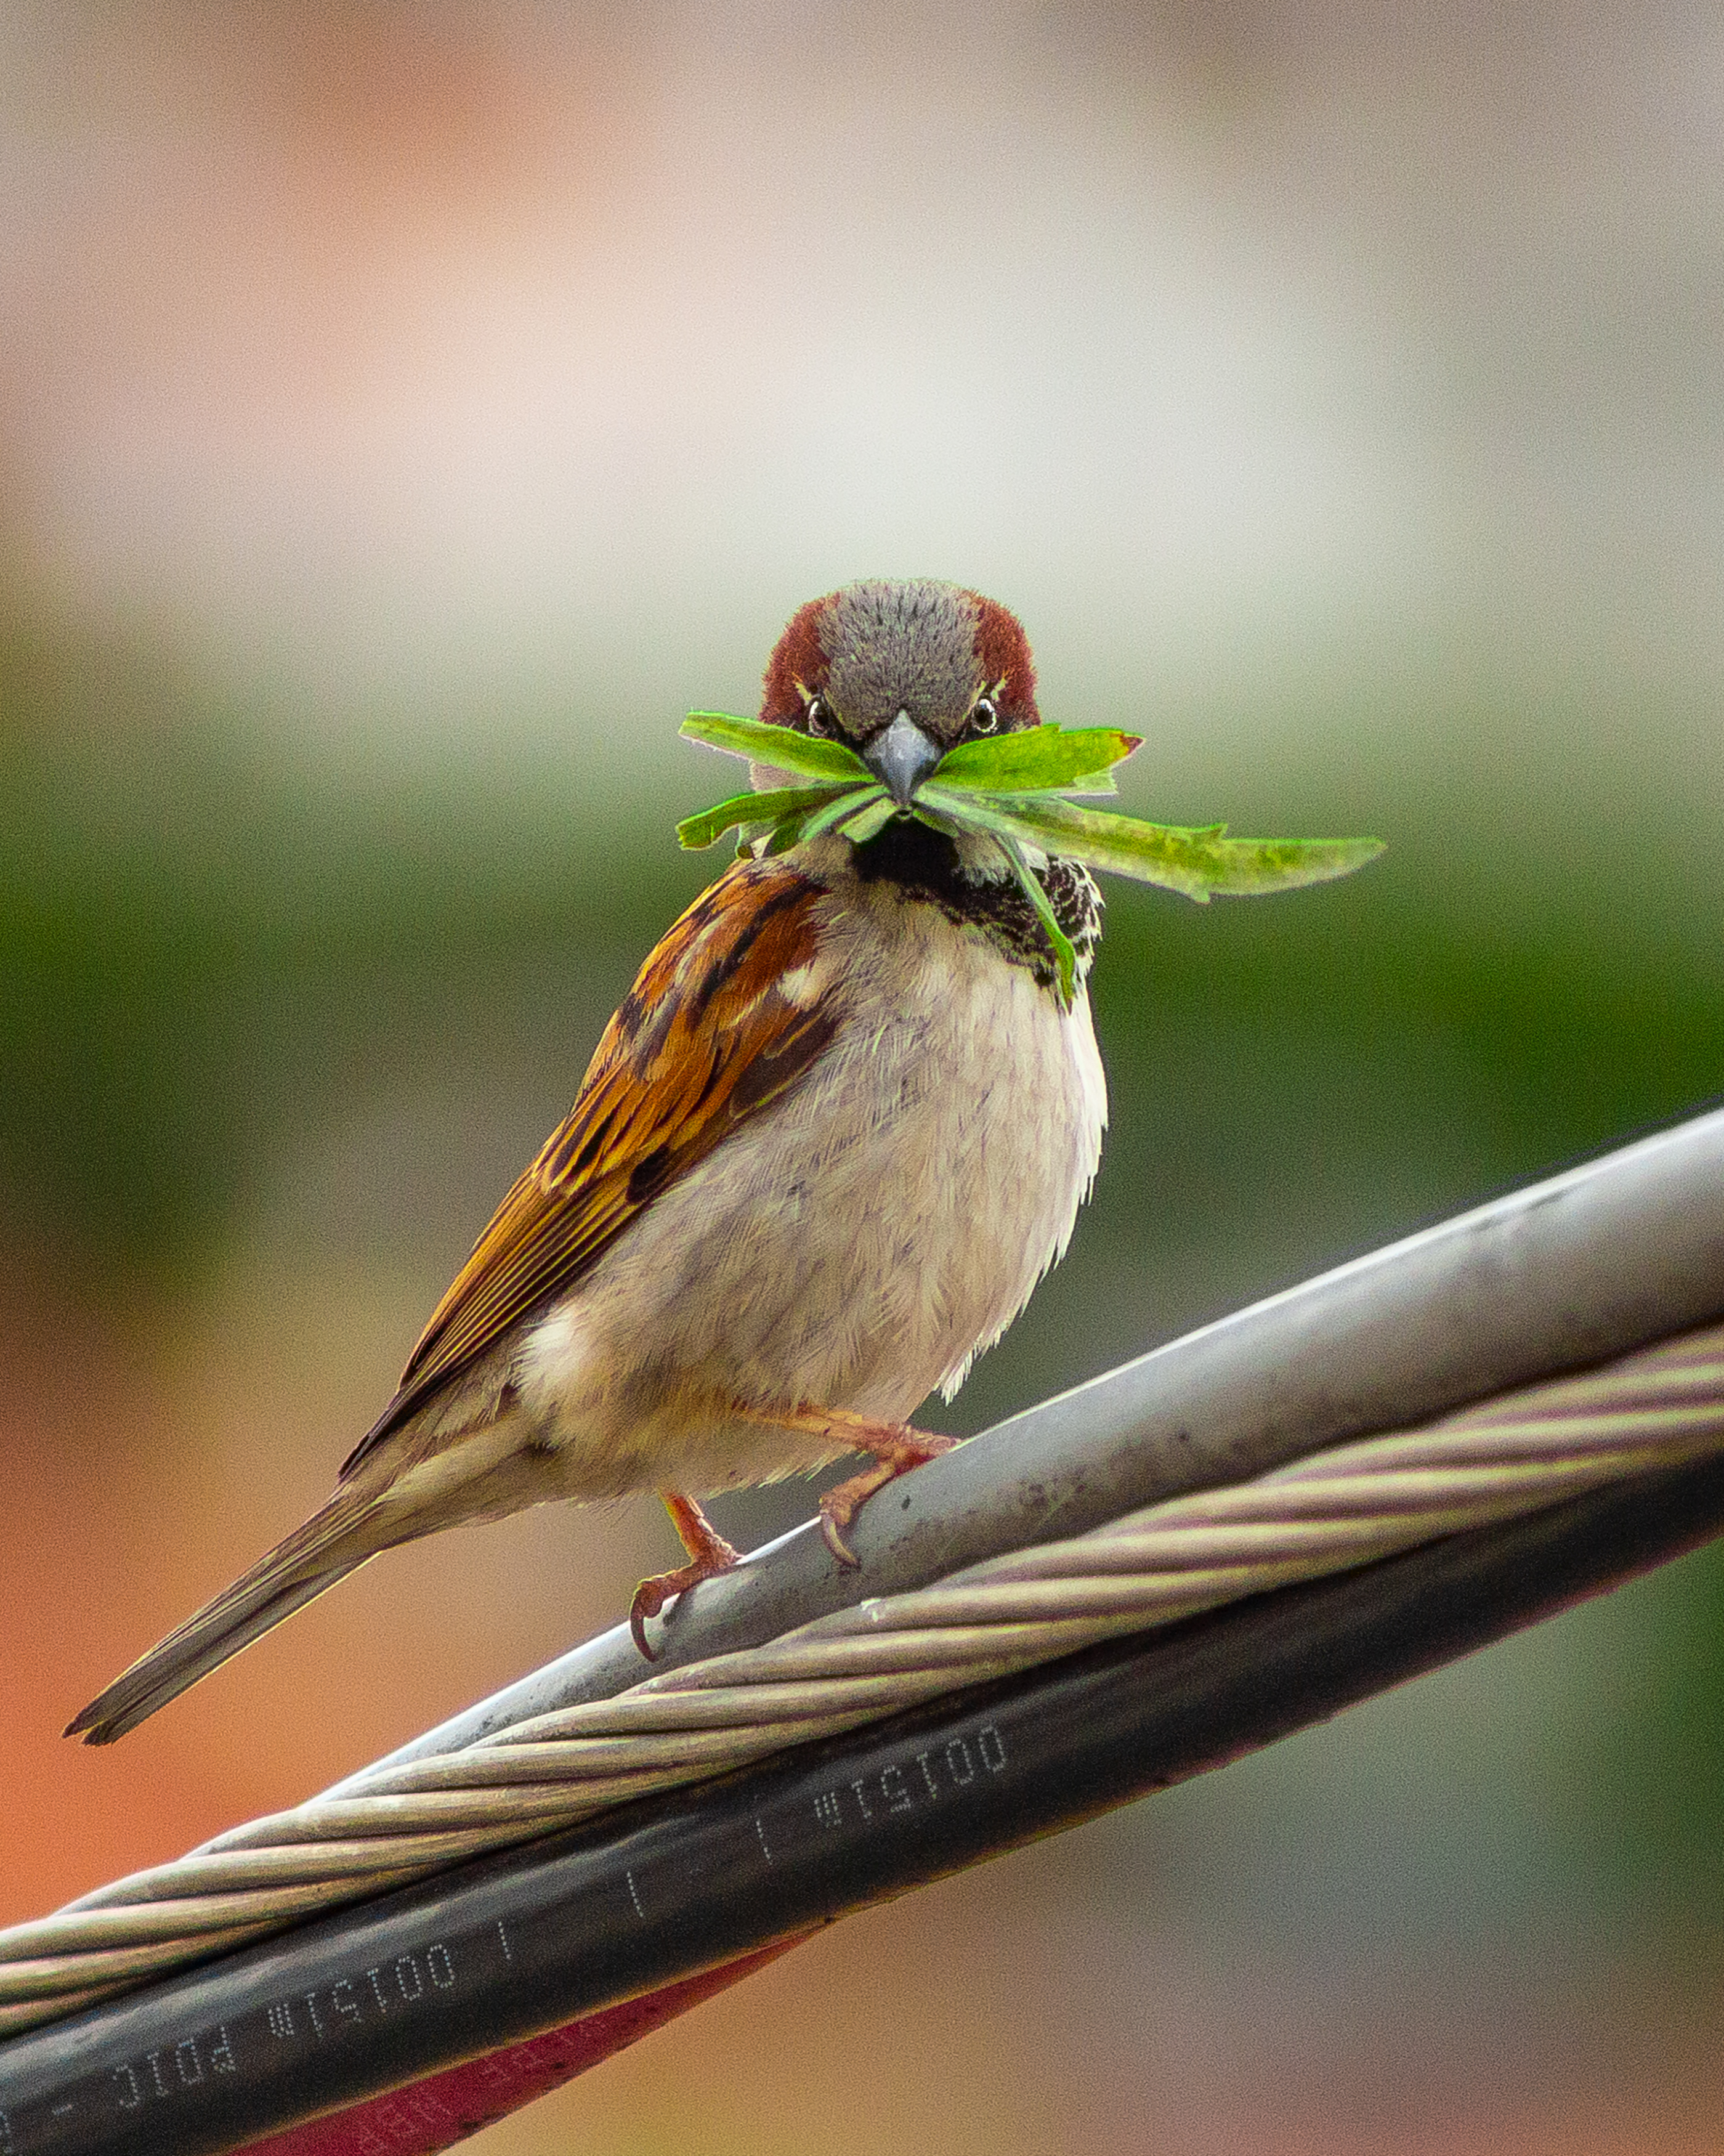 Close-Up Photo of Bird Perched On Cables